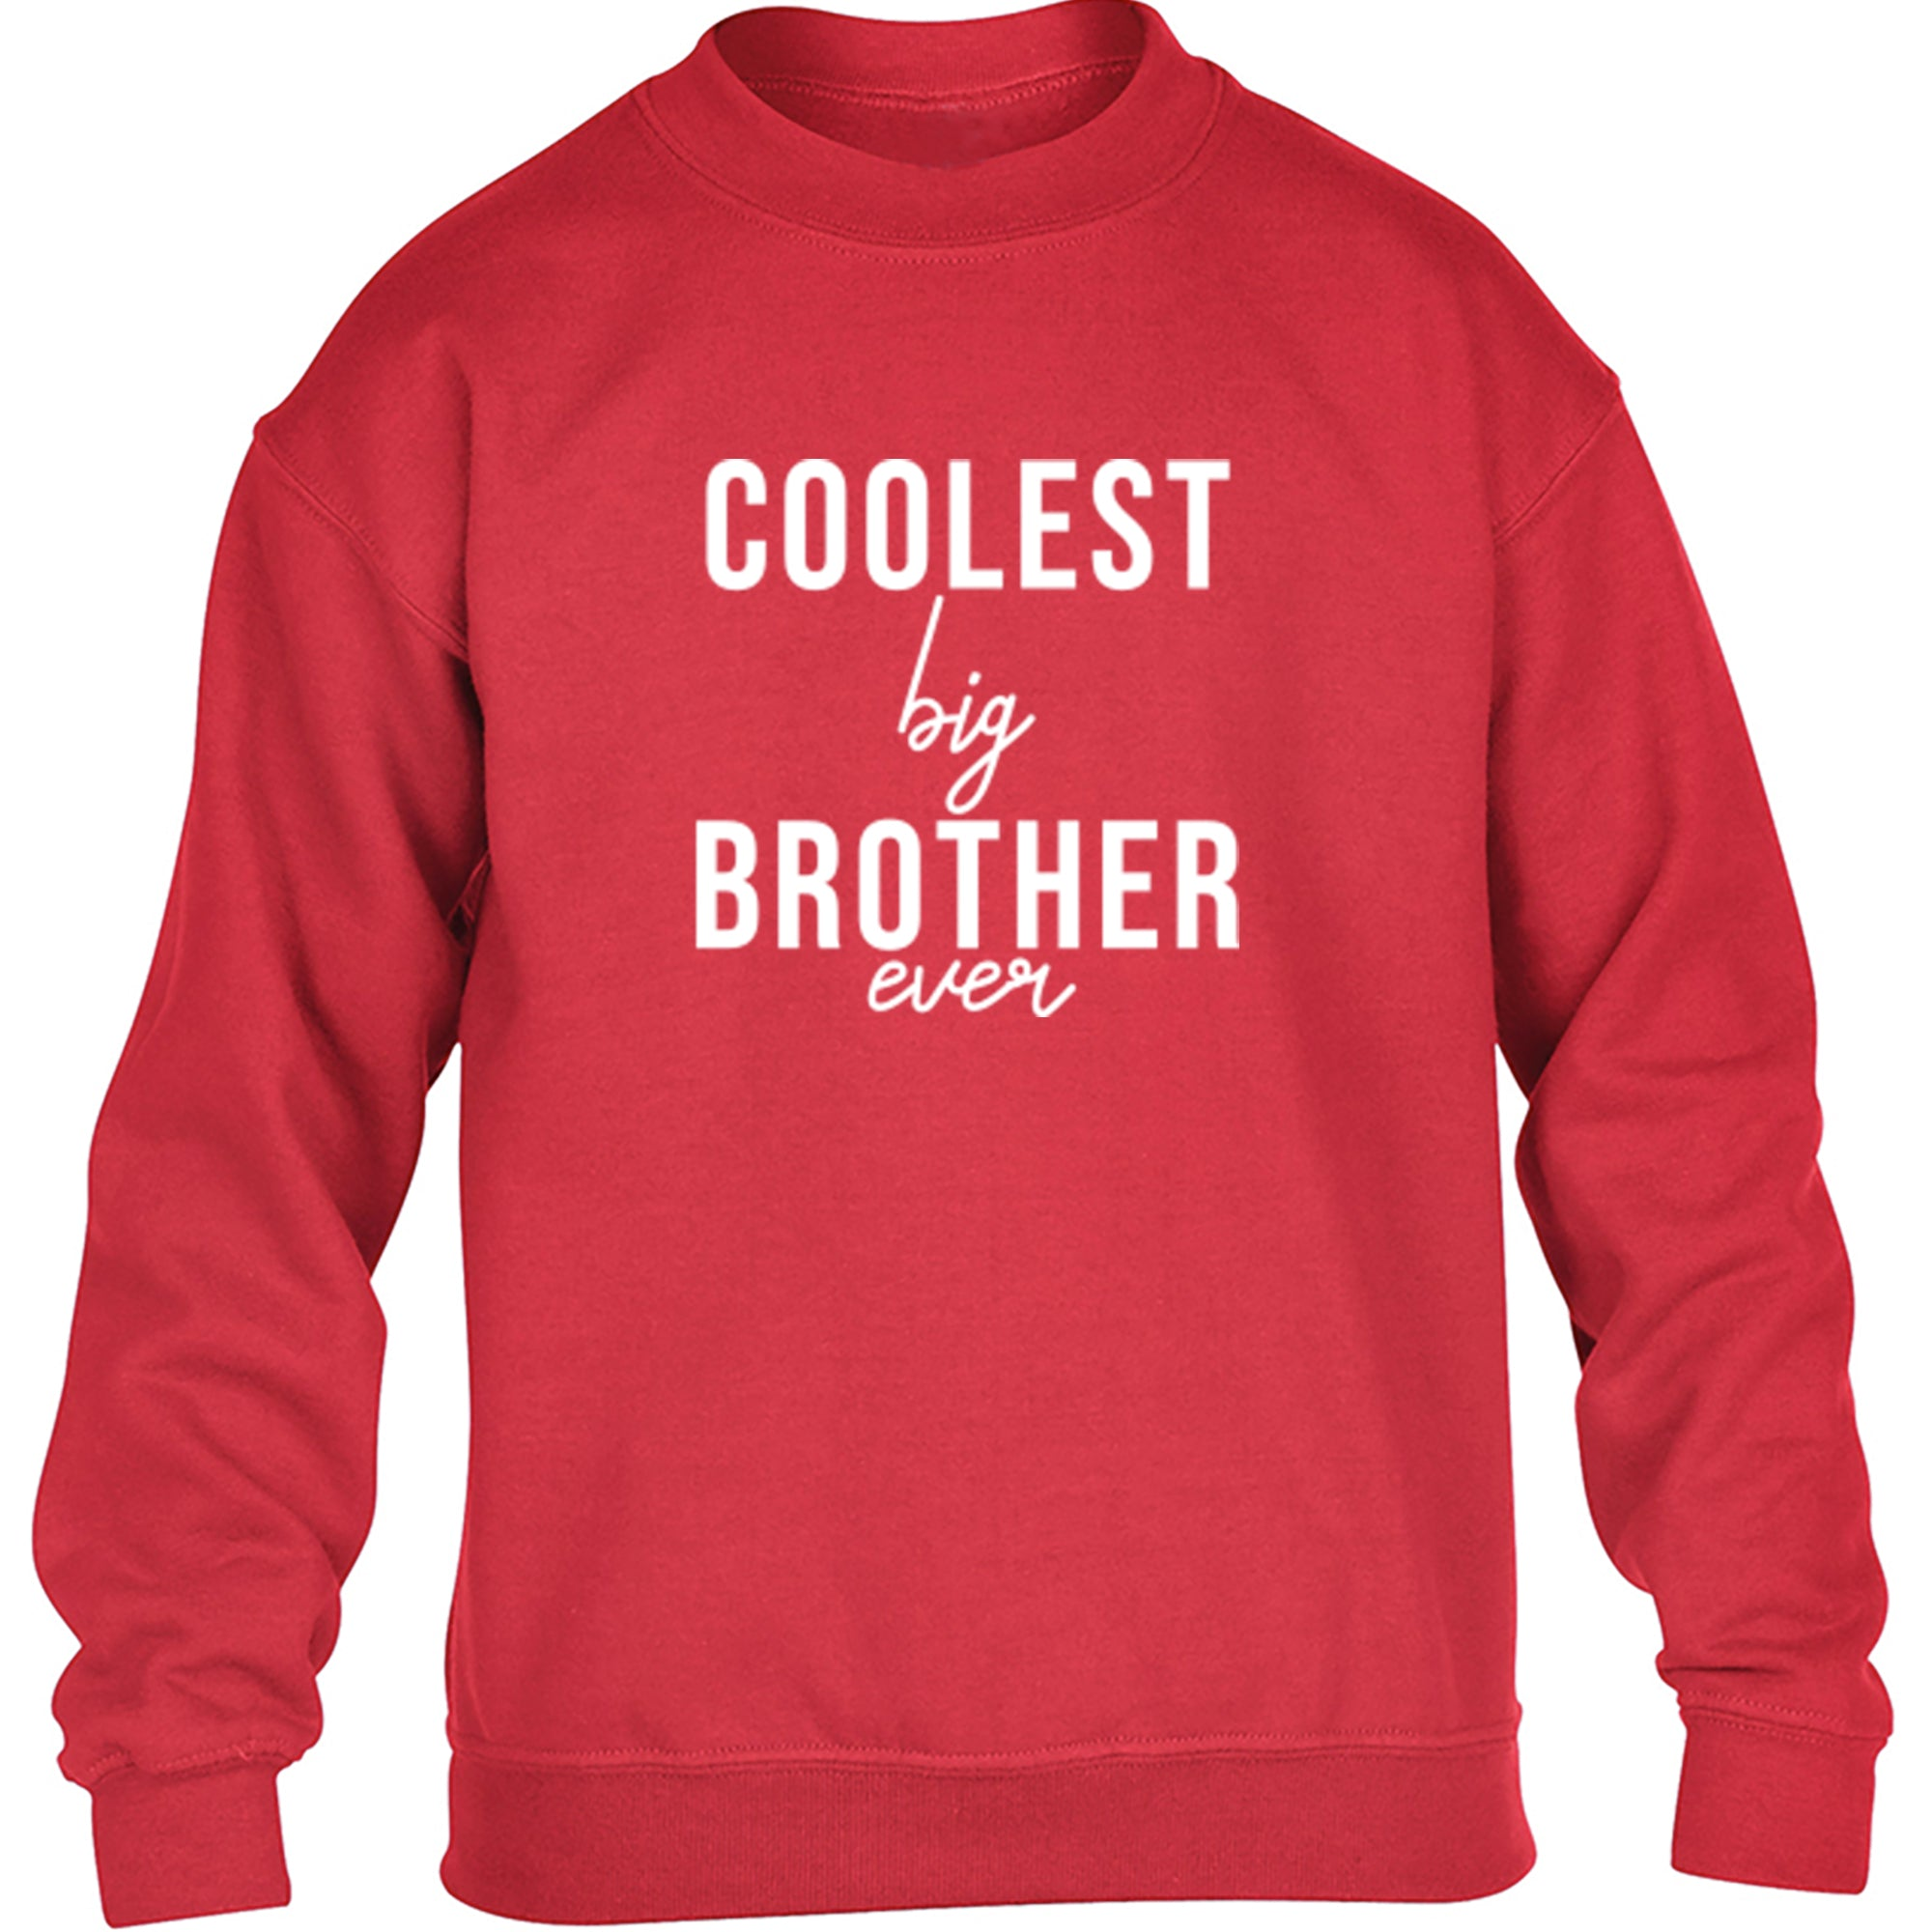 Coolest Big Brother Ever Childrens Ages 3/4-12/14 Unisex Jumper S0523